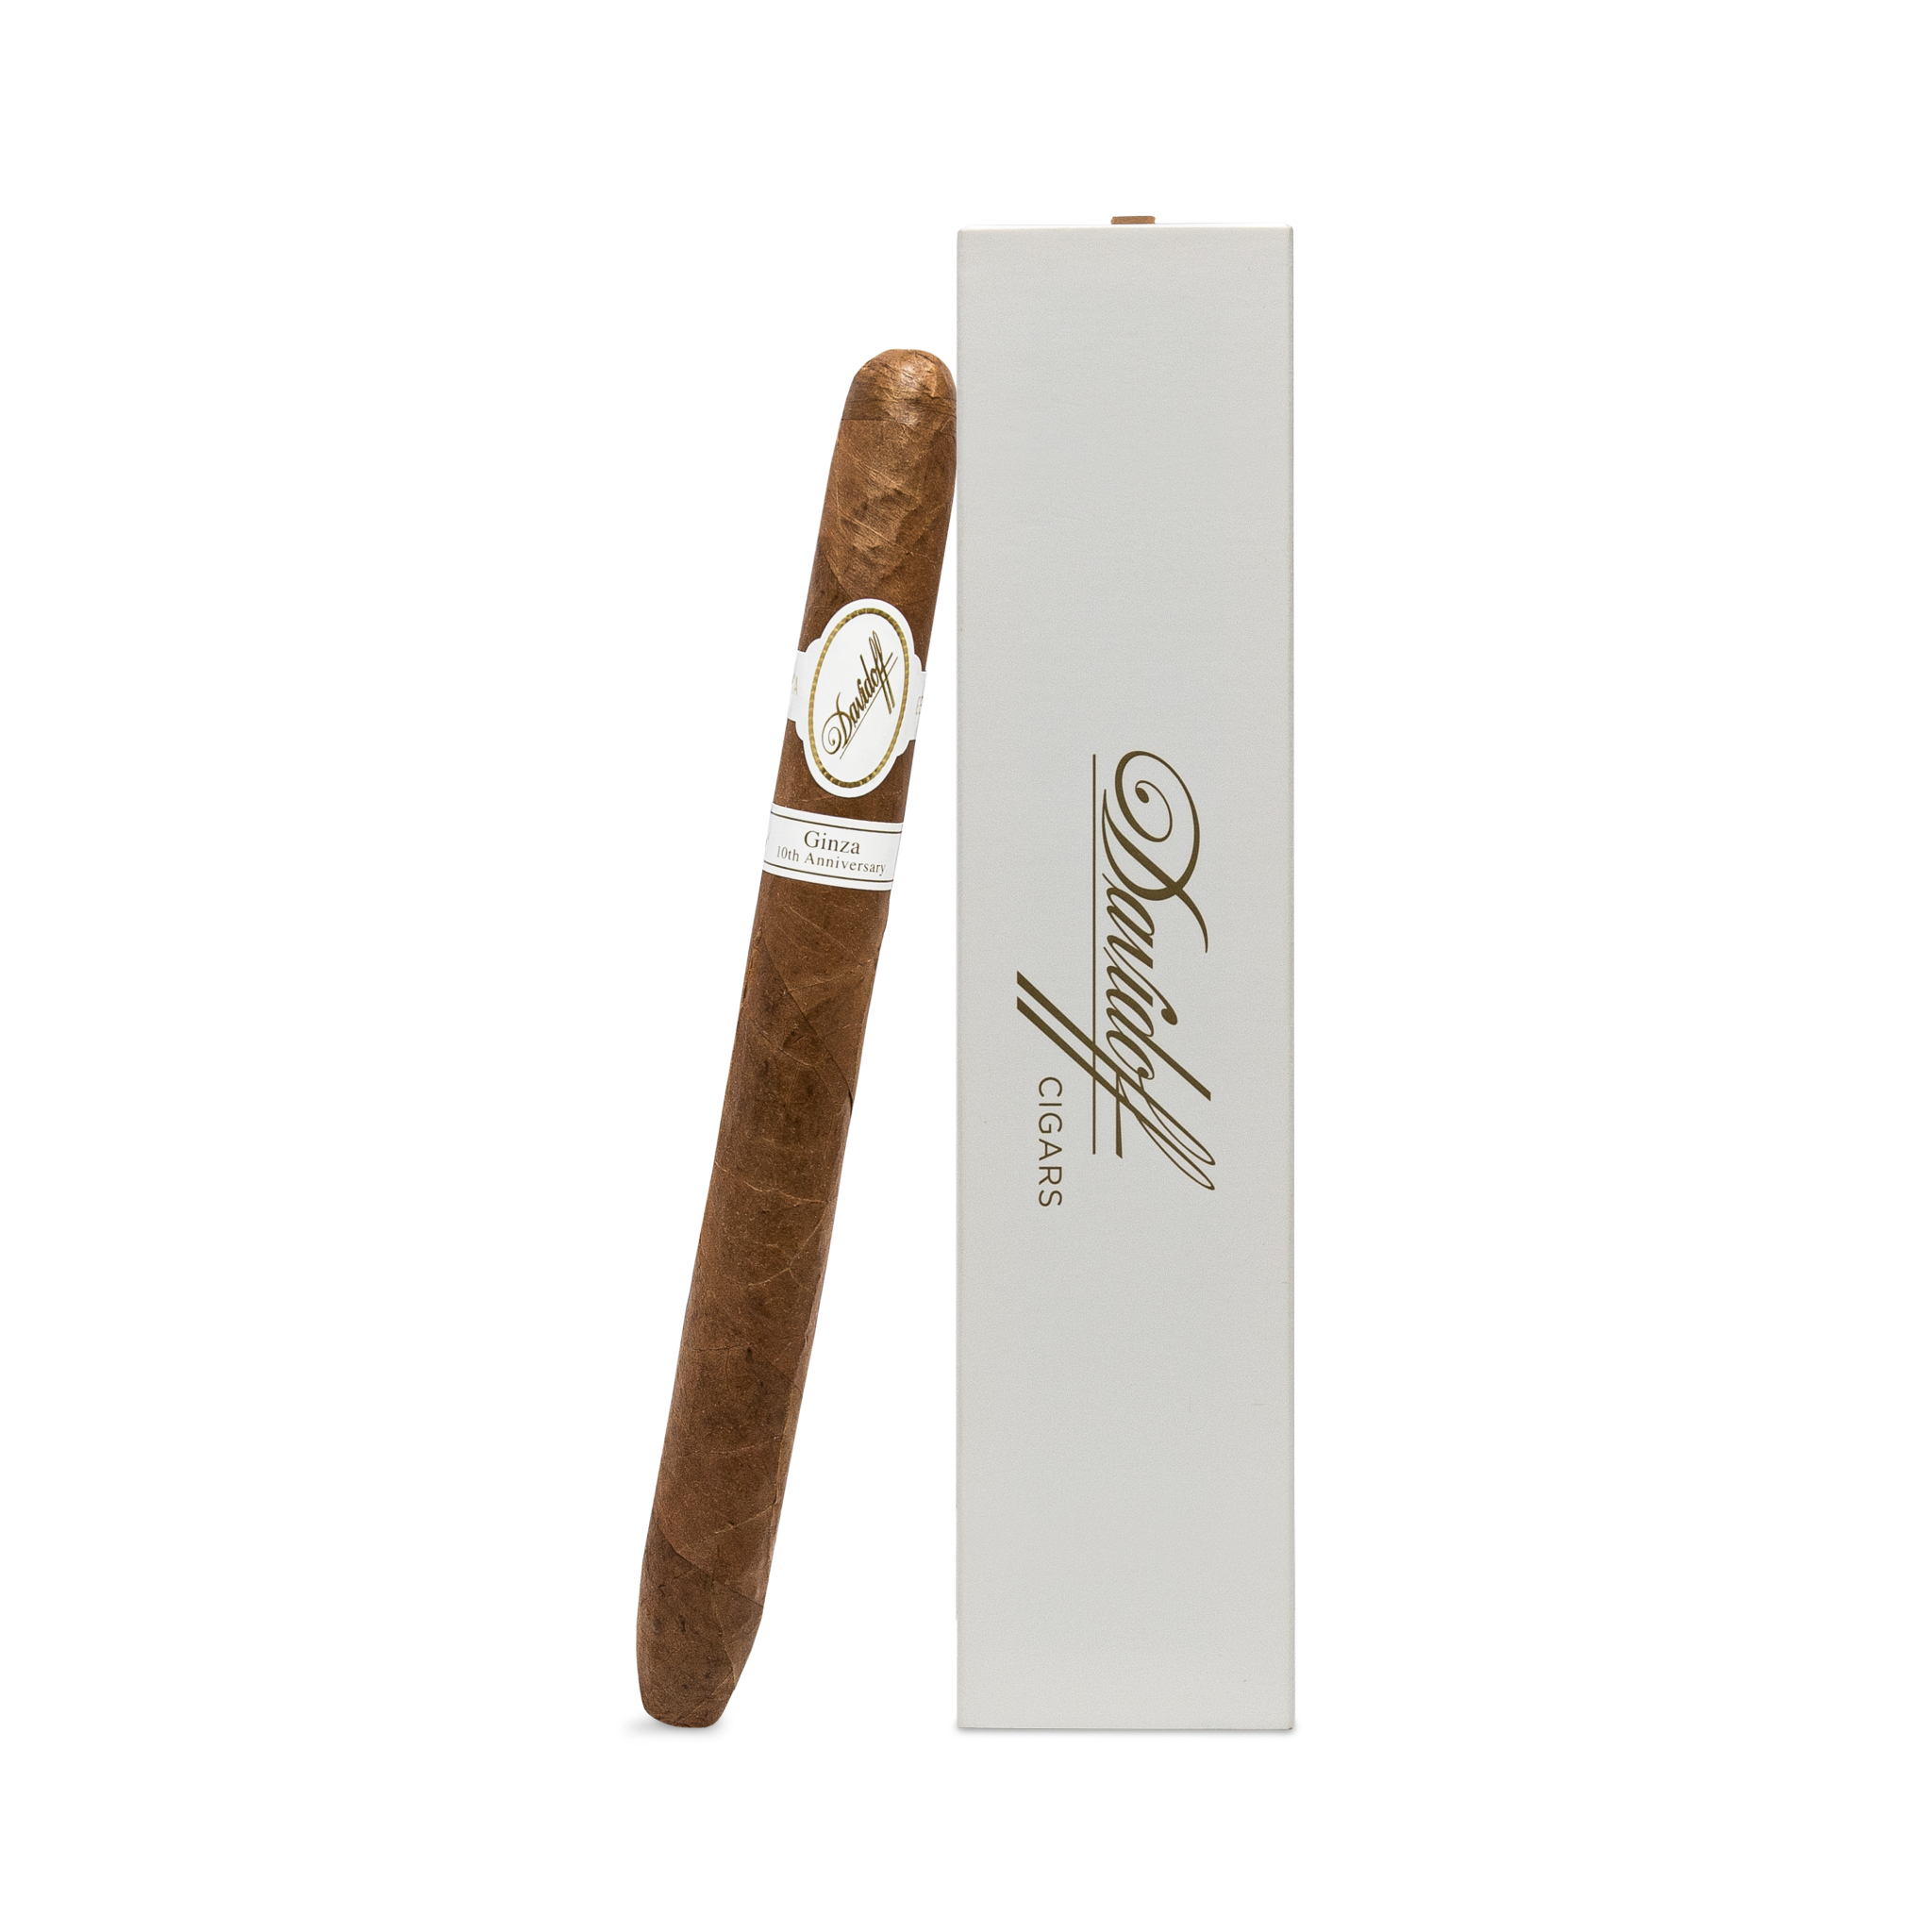 Davidoff Adds the Ginza 10th Anniversary To Its Vault Series